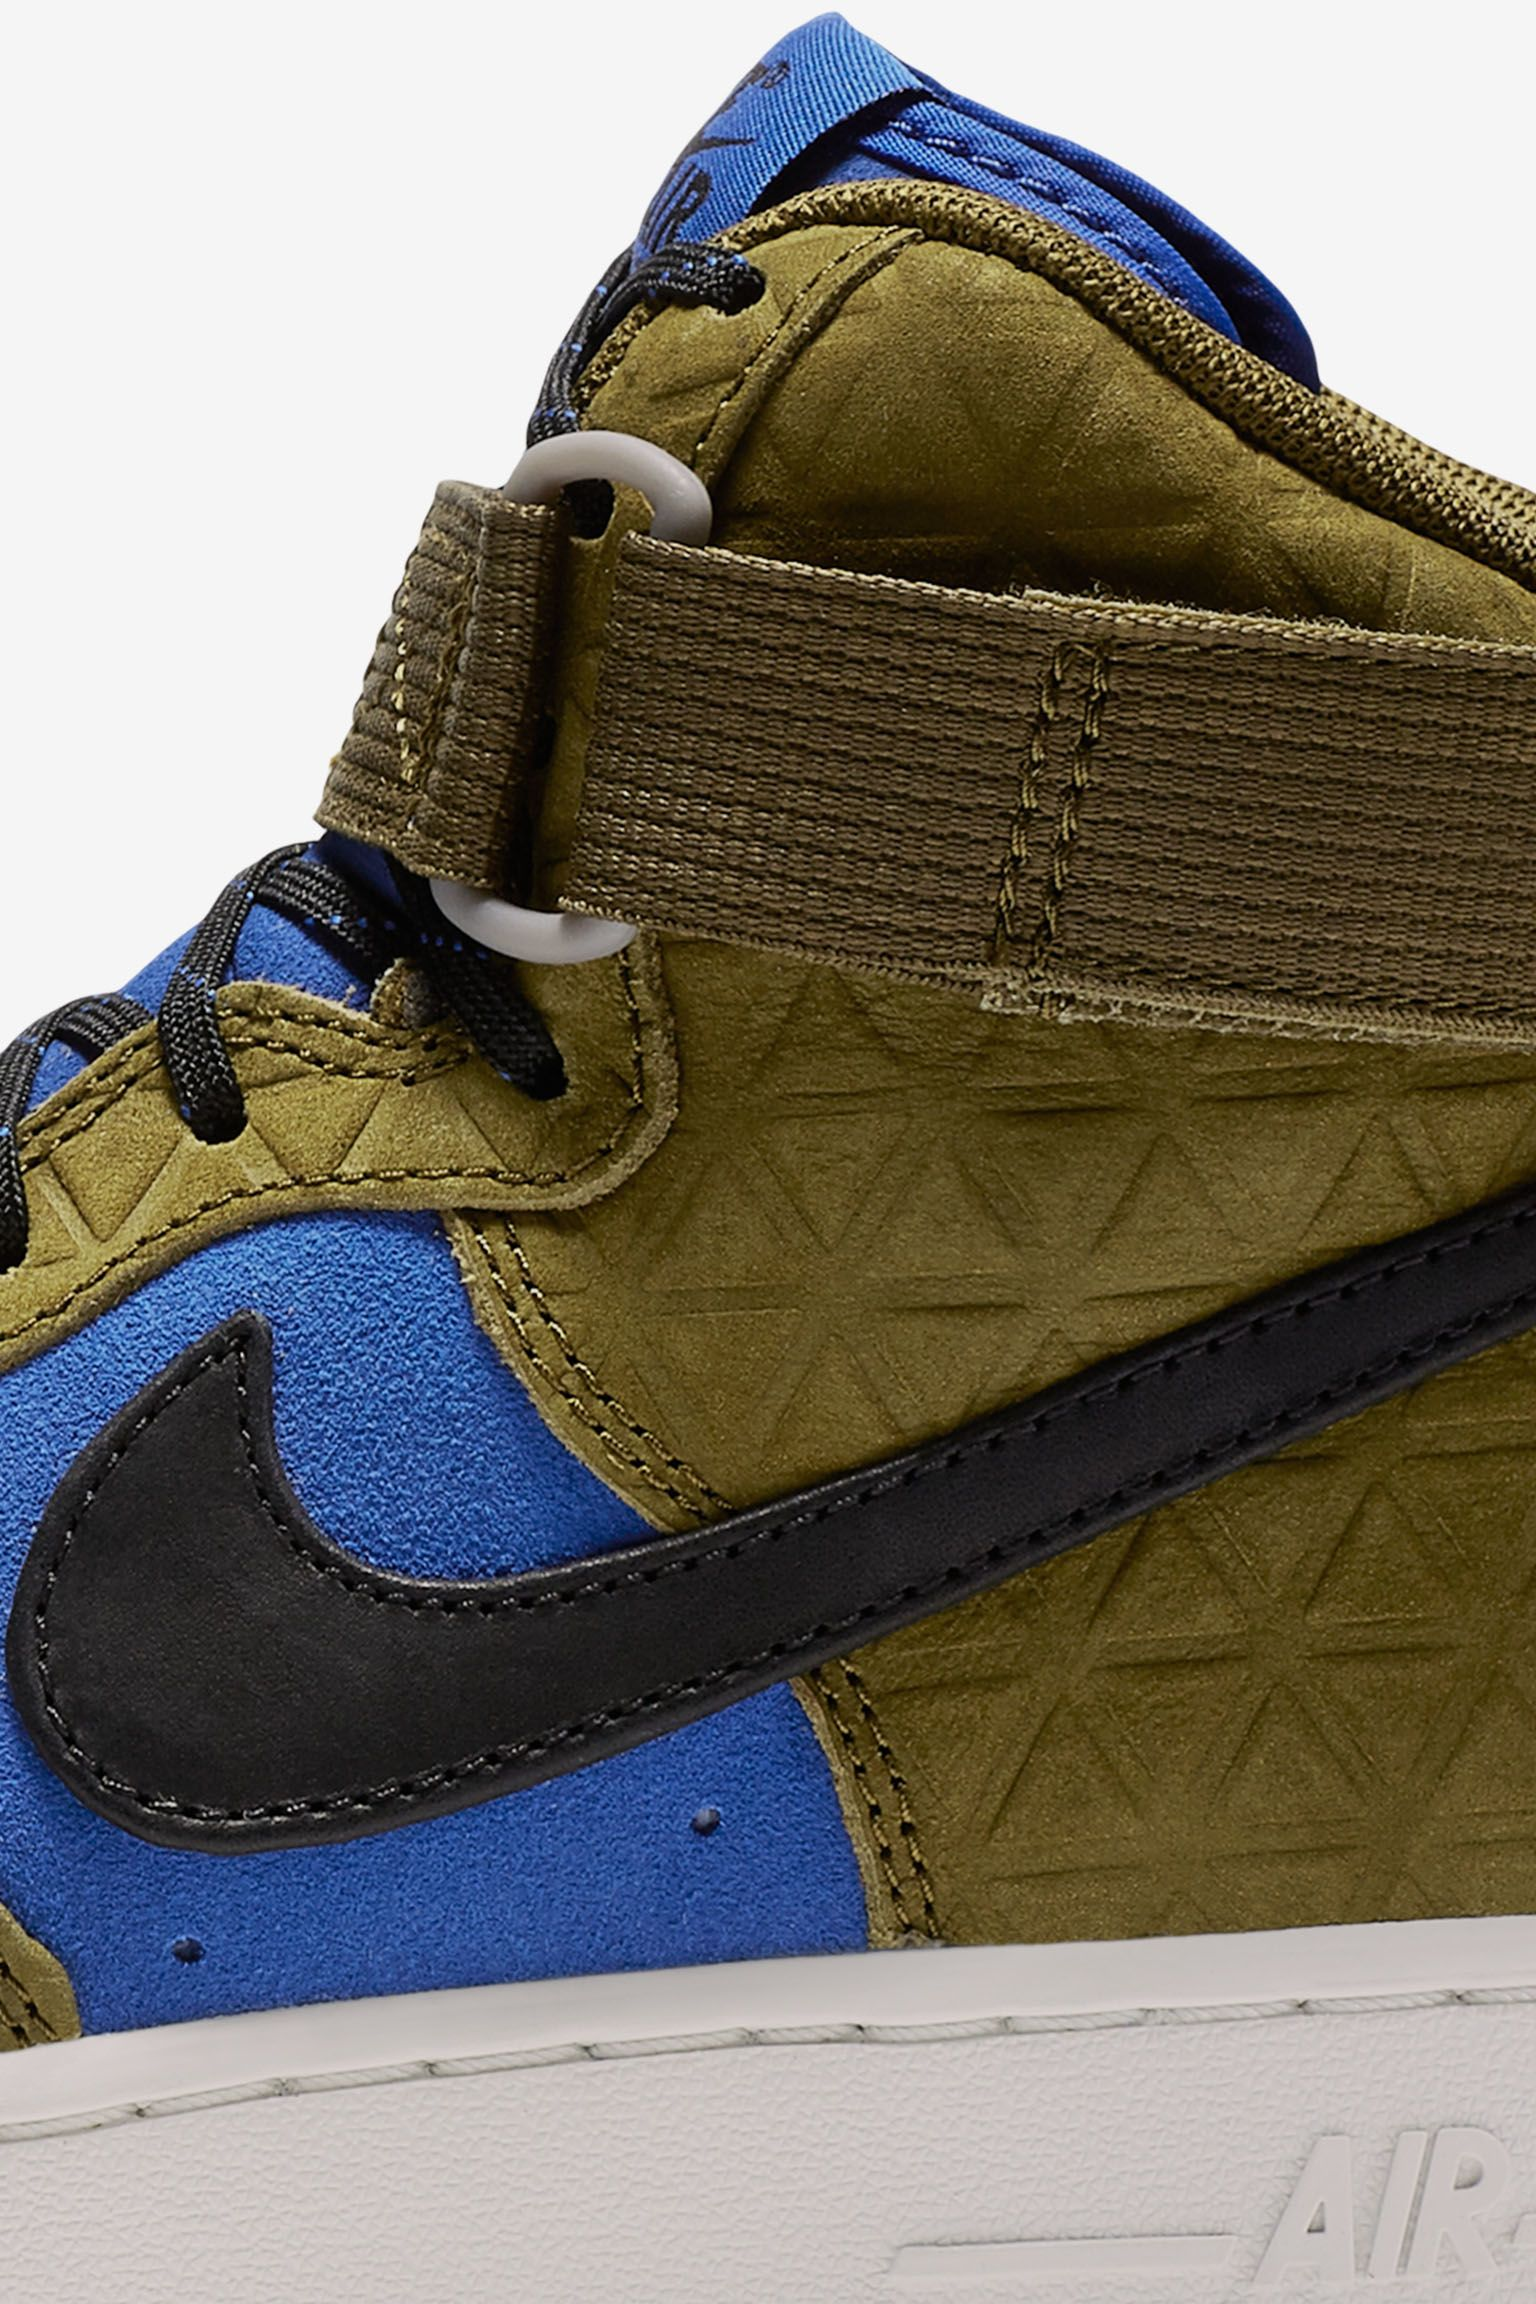 Women's Nike Air Force 1 Hi 'Olive & Mid Turquoise'